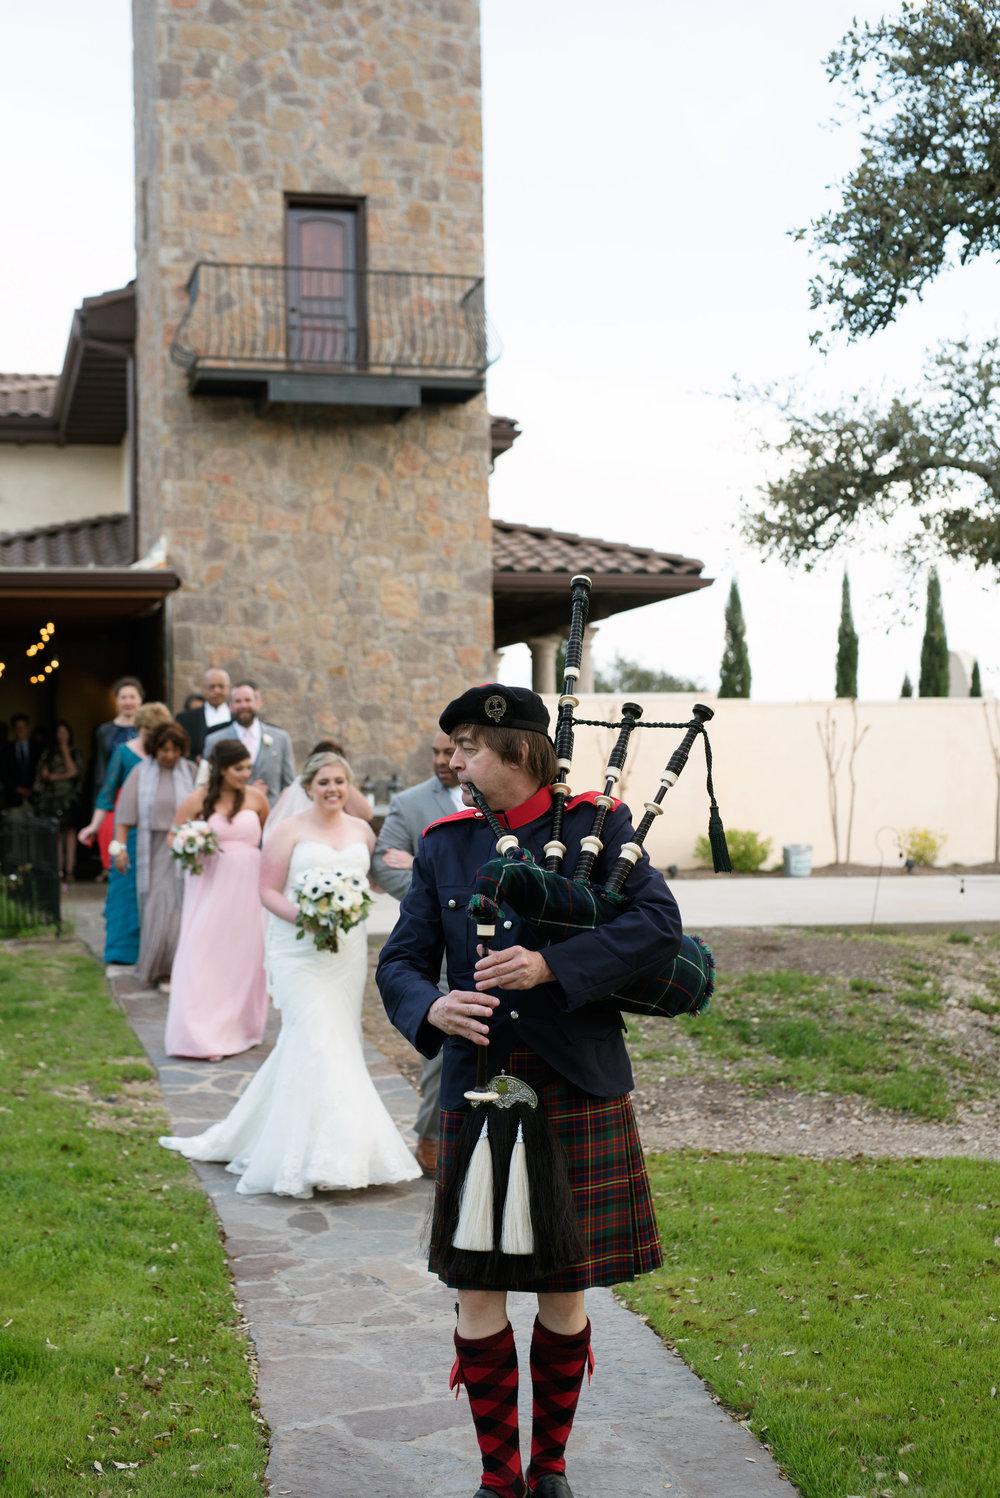 Ma Maison Austin Wedding Venue_ Austin Wedding Planner Heavenly Day Events _ Kristi Wright Austin Wedding Photographer20160306_0162.JPG